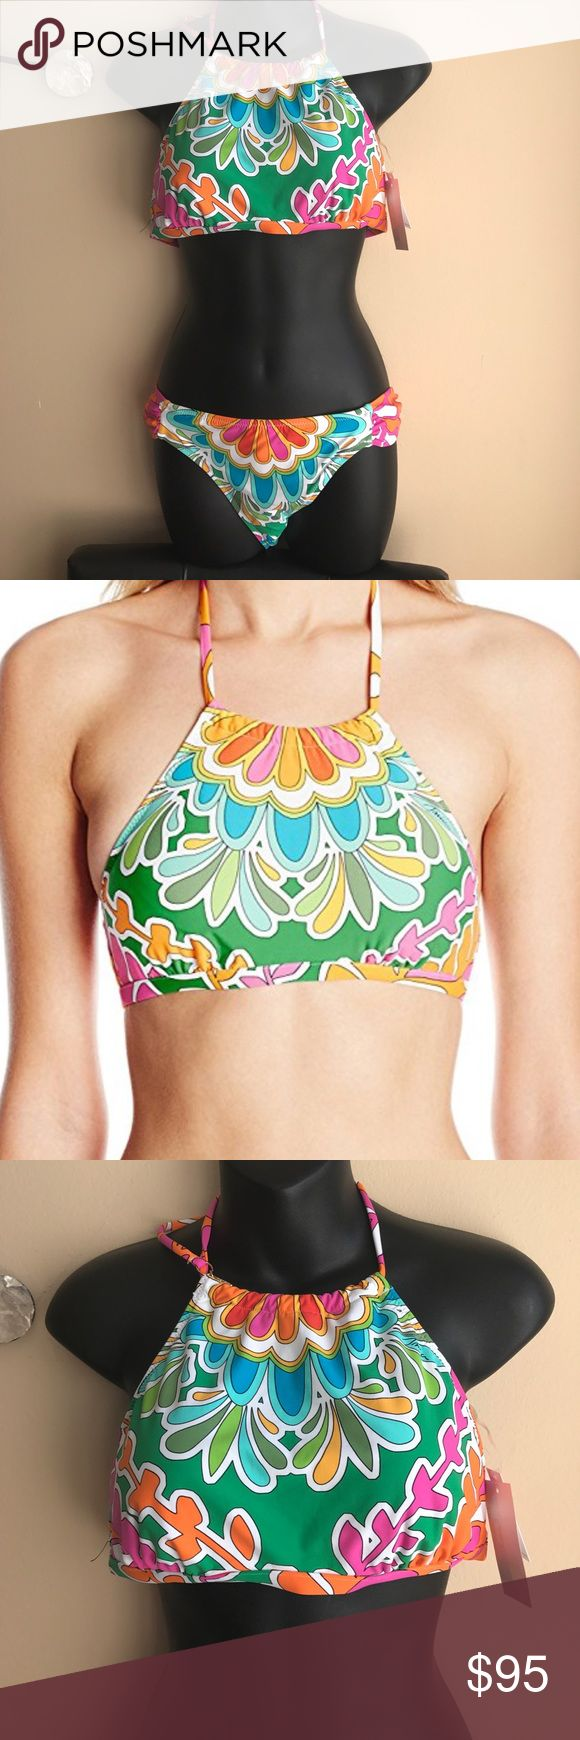 Trina Turk Sz 10 2 piece bikini set high neck 80% Nylon, 20% Elastane Imported Hand Wash Banded under bust Ties at neck Removable soft cup Trina Turk Swim Bikinis